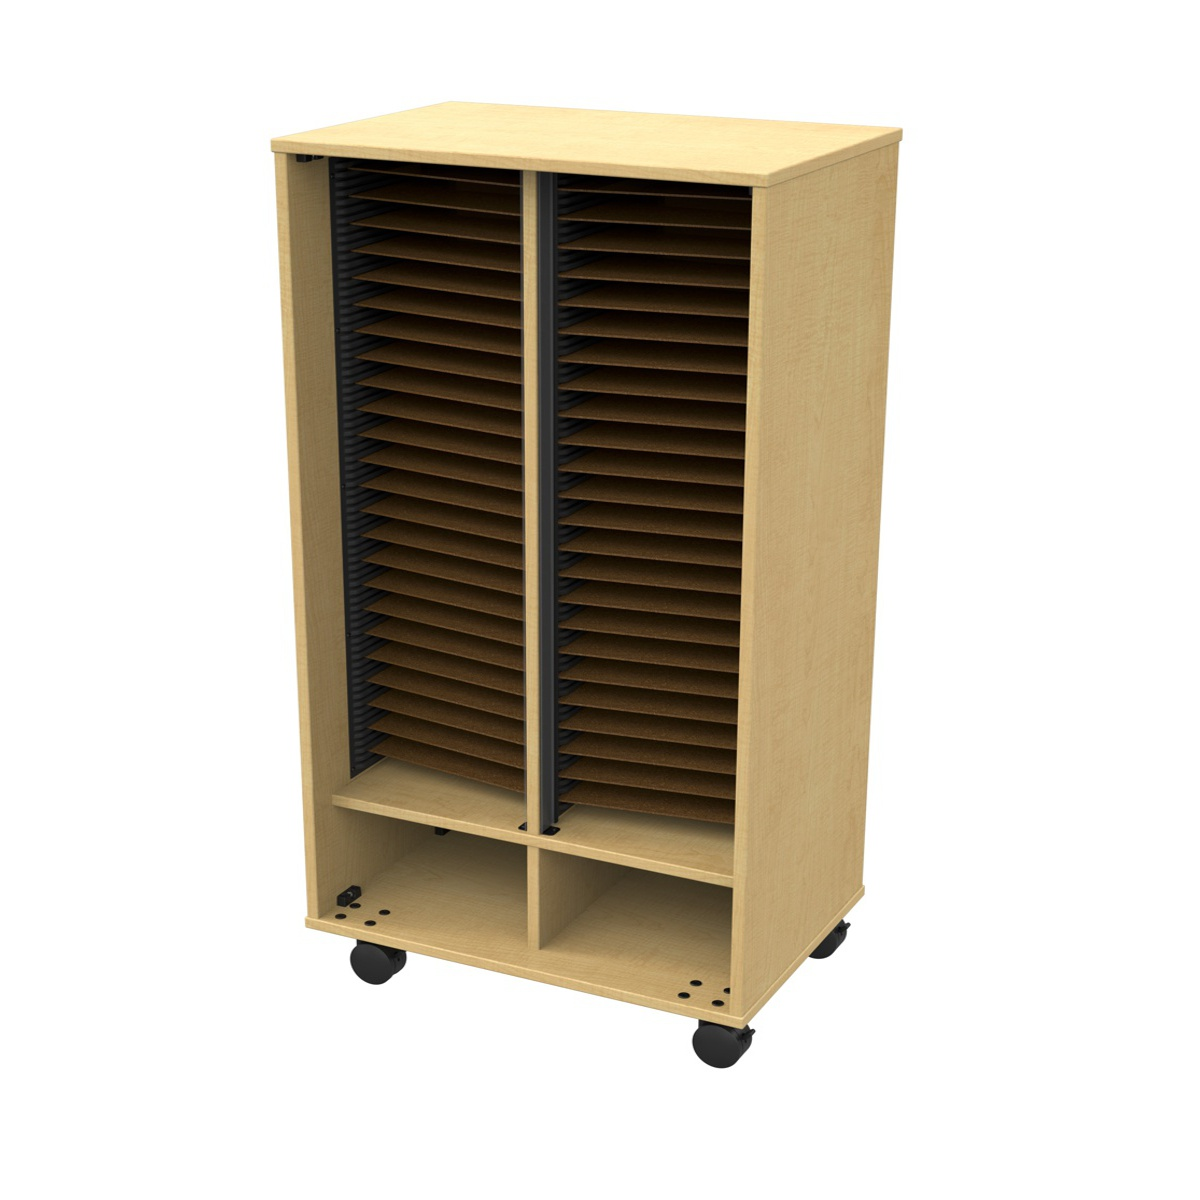 Bs402 Folio Cabinet Mobile Marco Group Inc